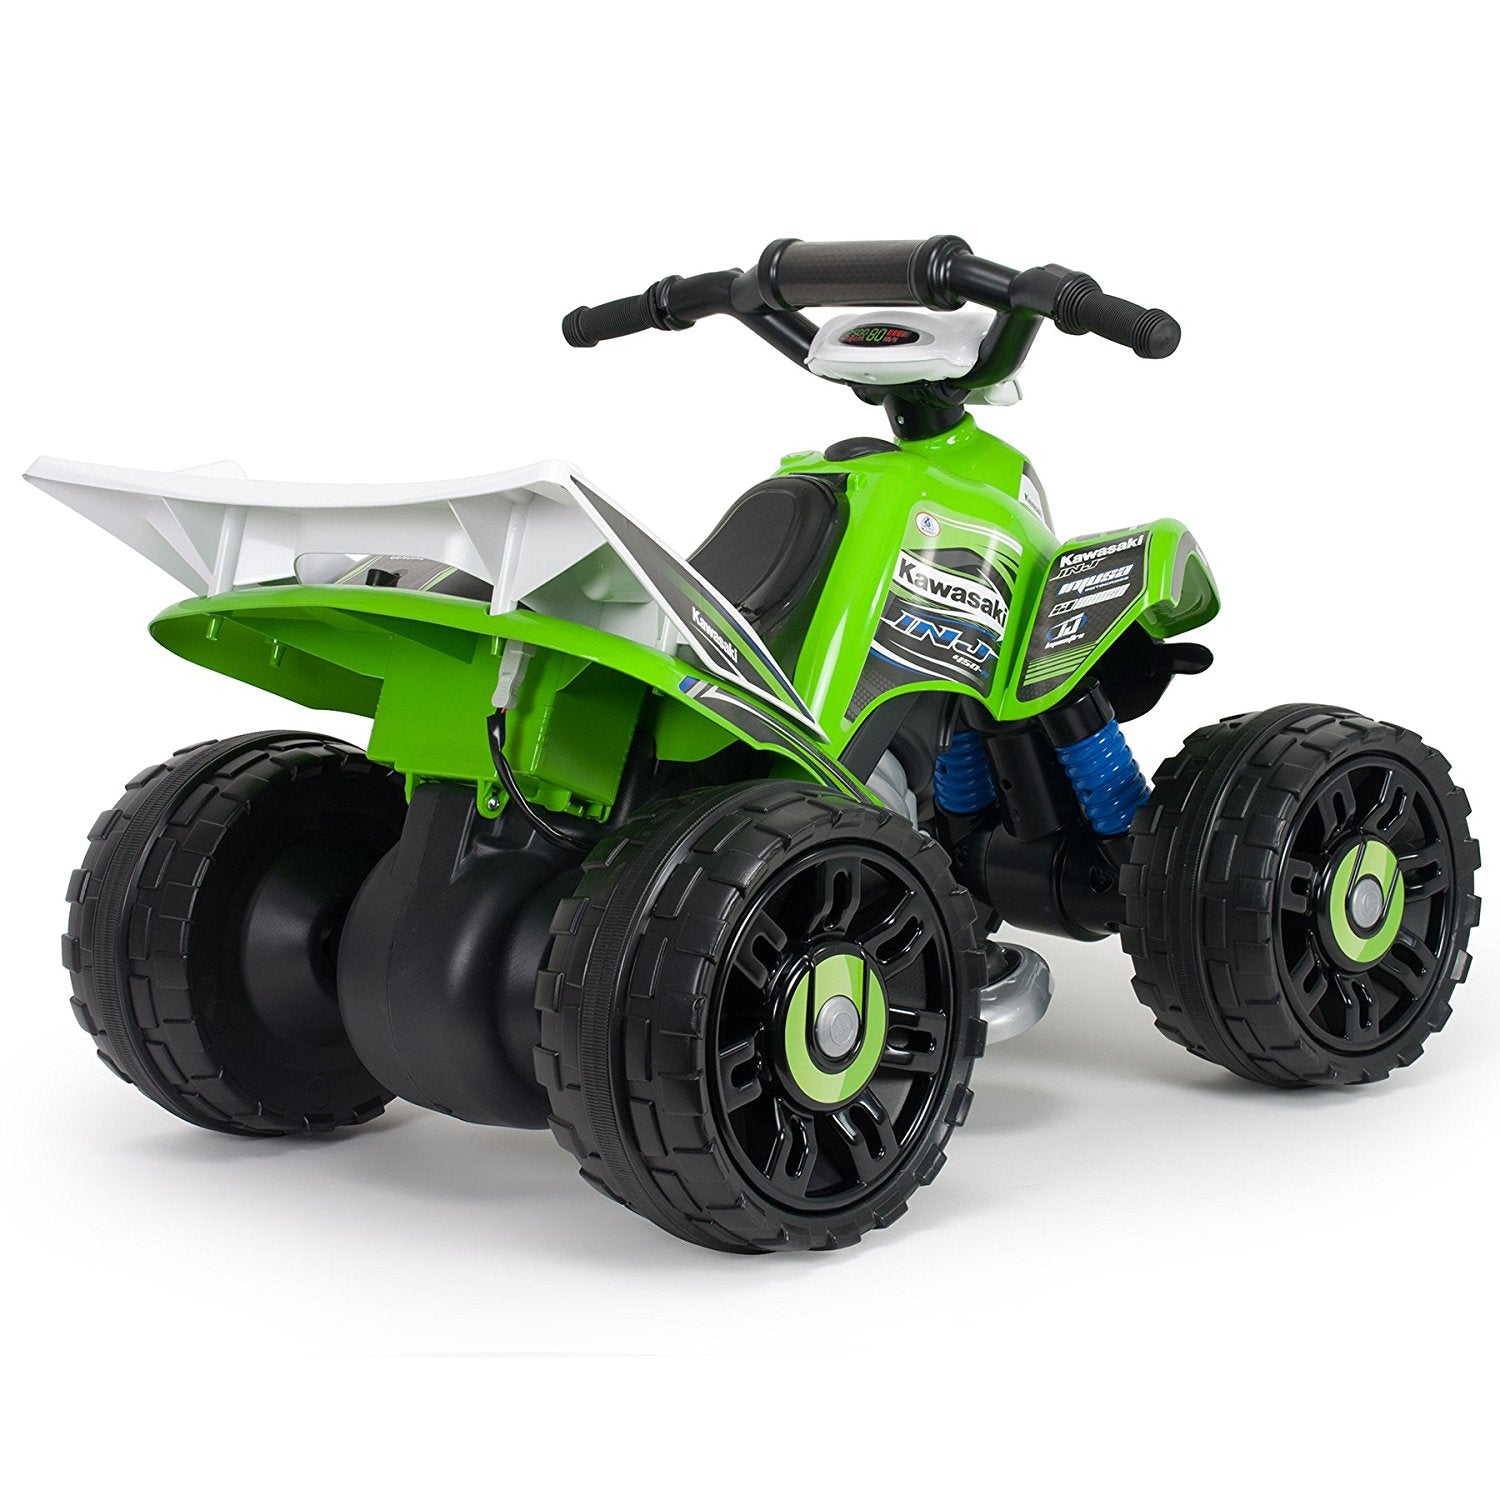 Injusa Electric Ride On Quad Kawasaki ATV 12 Volt – Discount Outlet